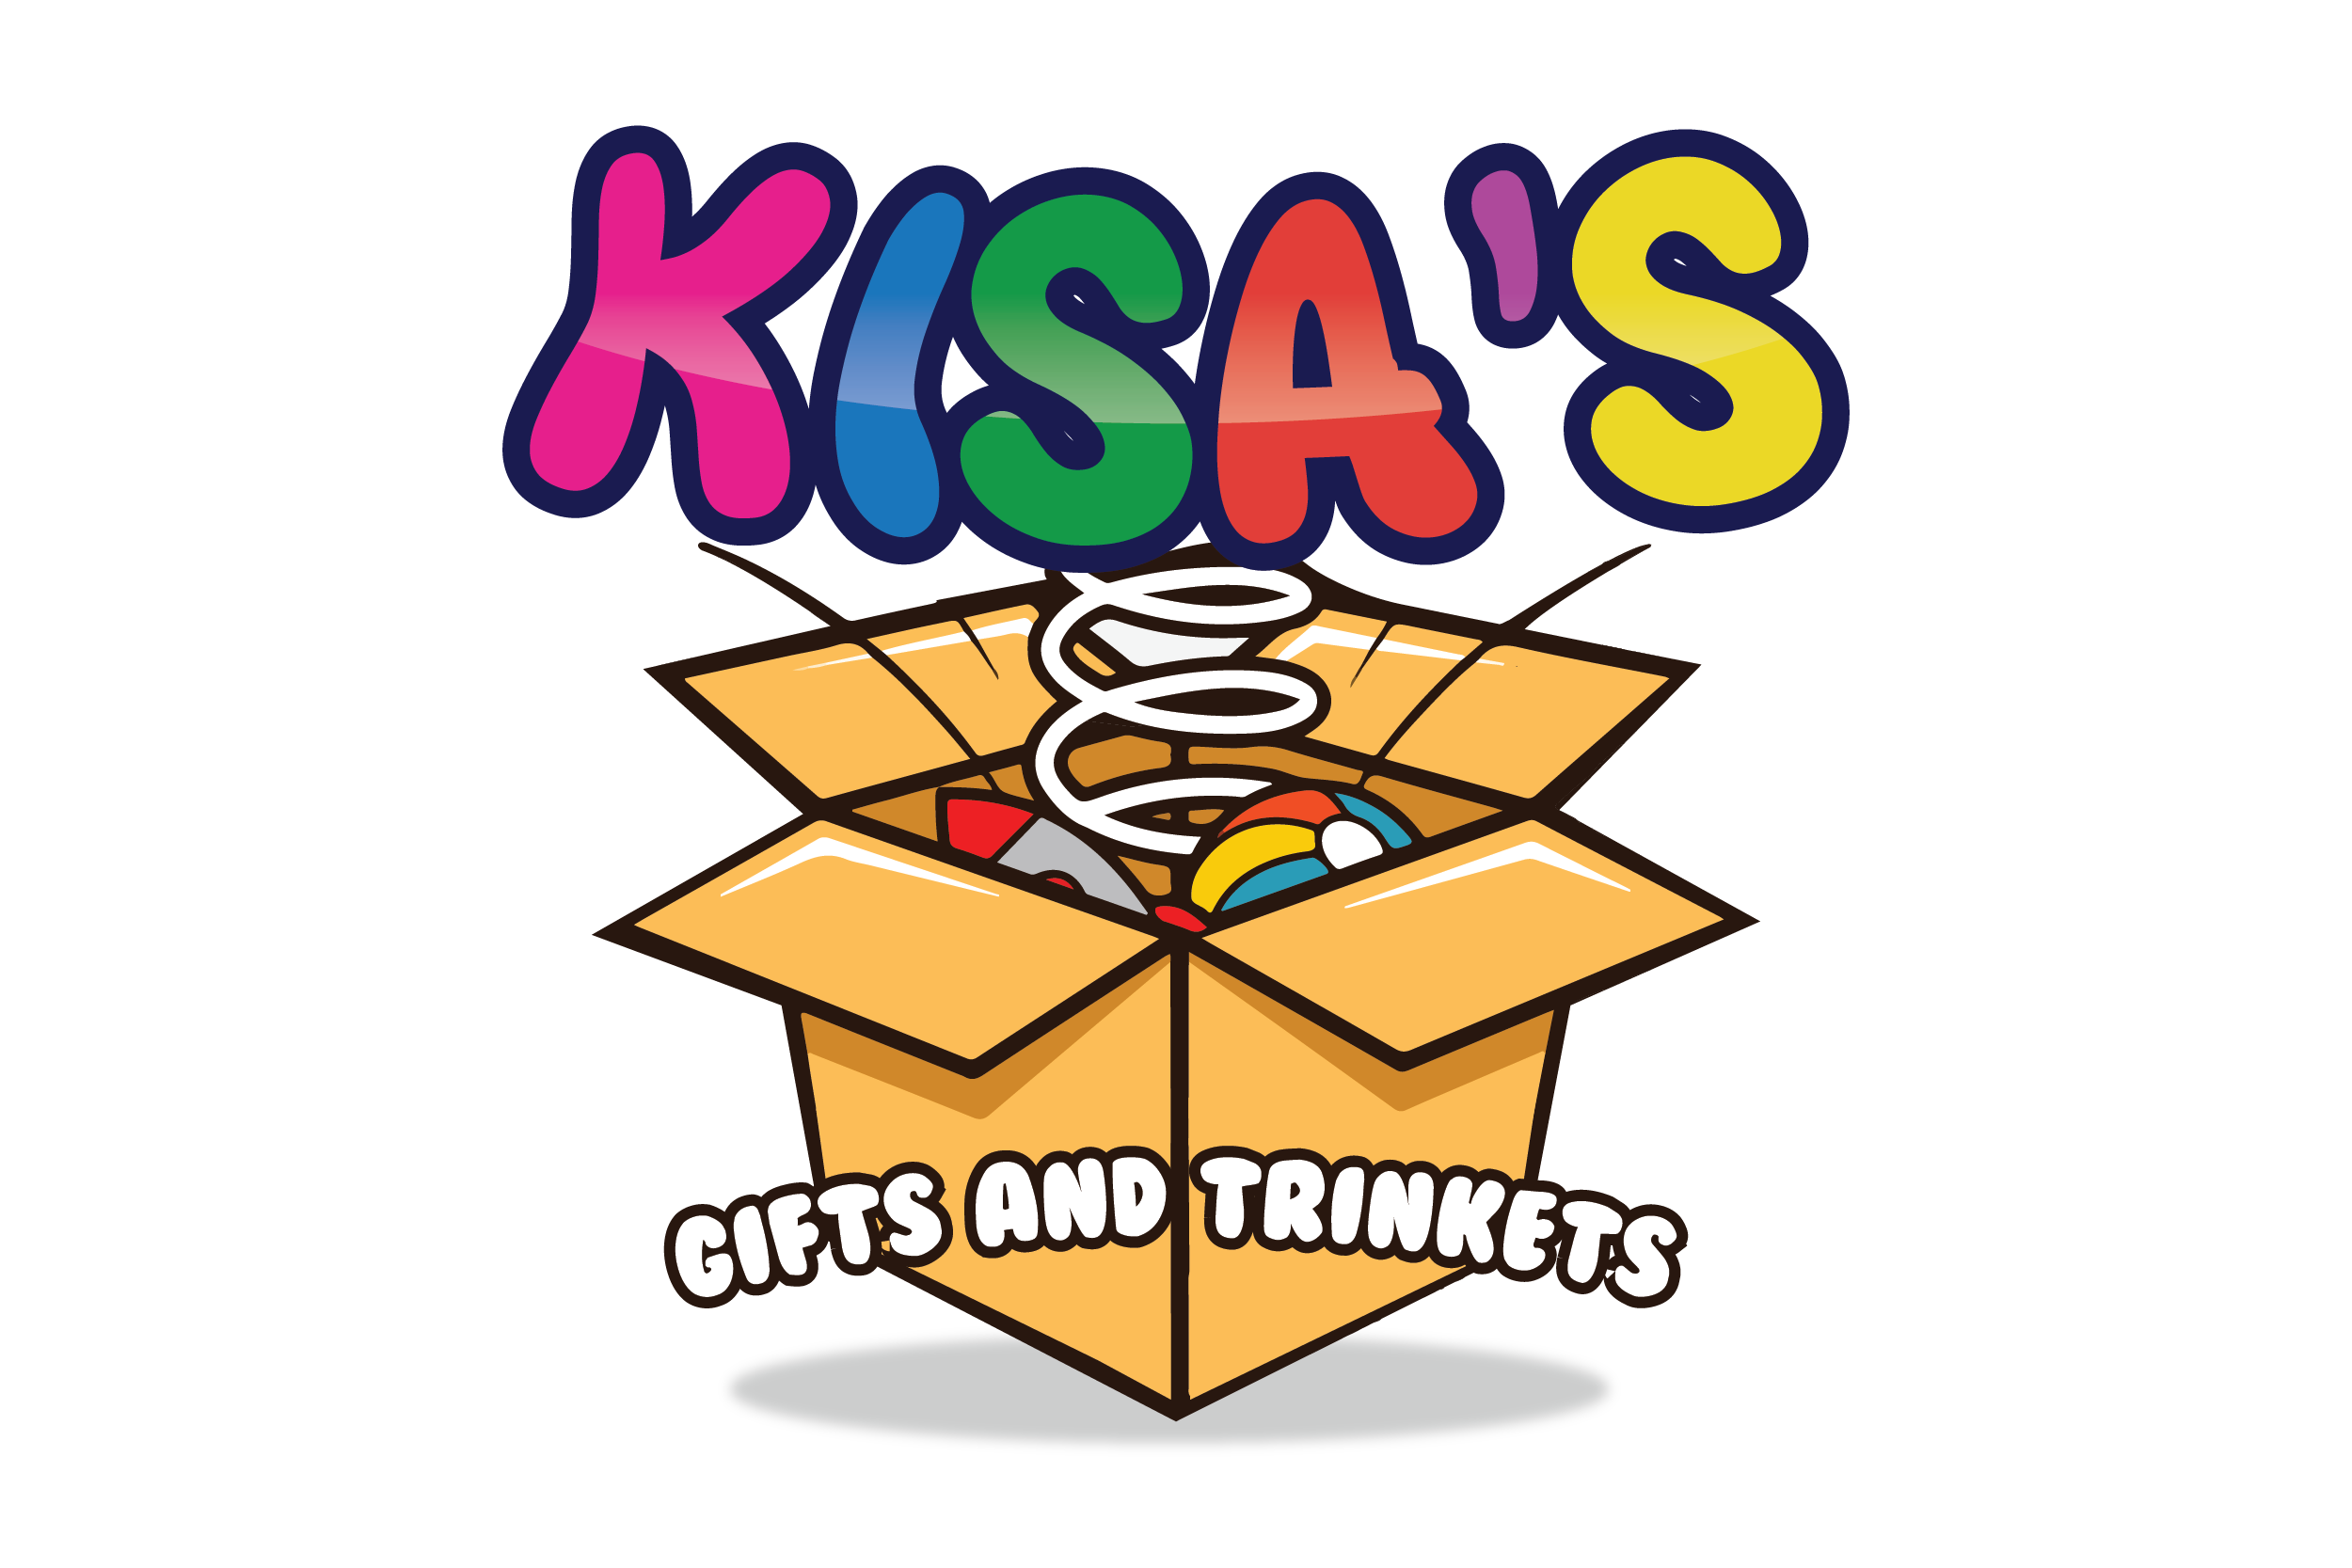 Kisa's Gifts and Trinkets